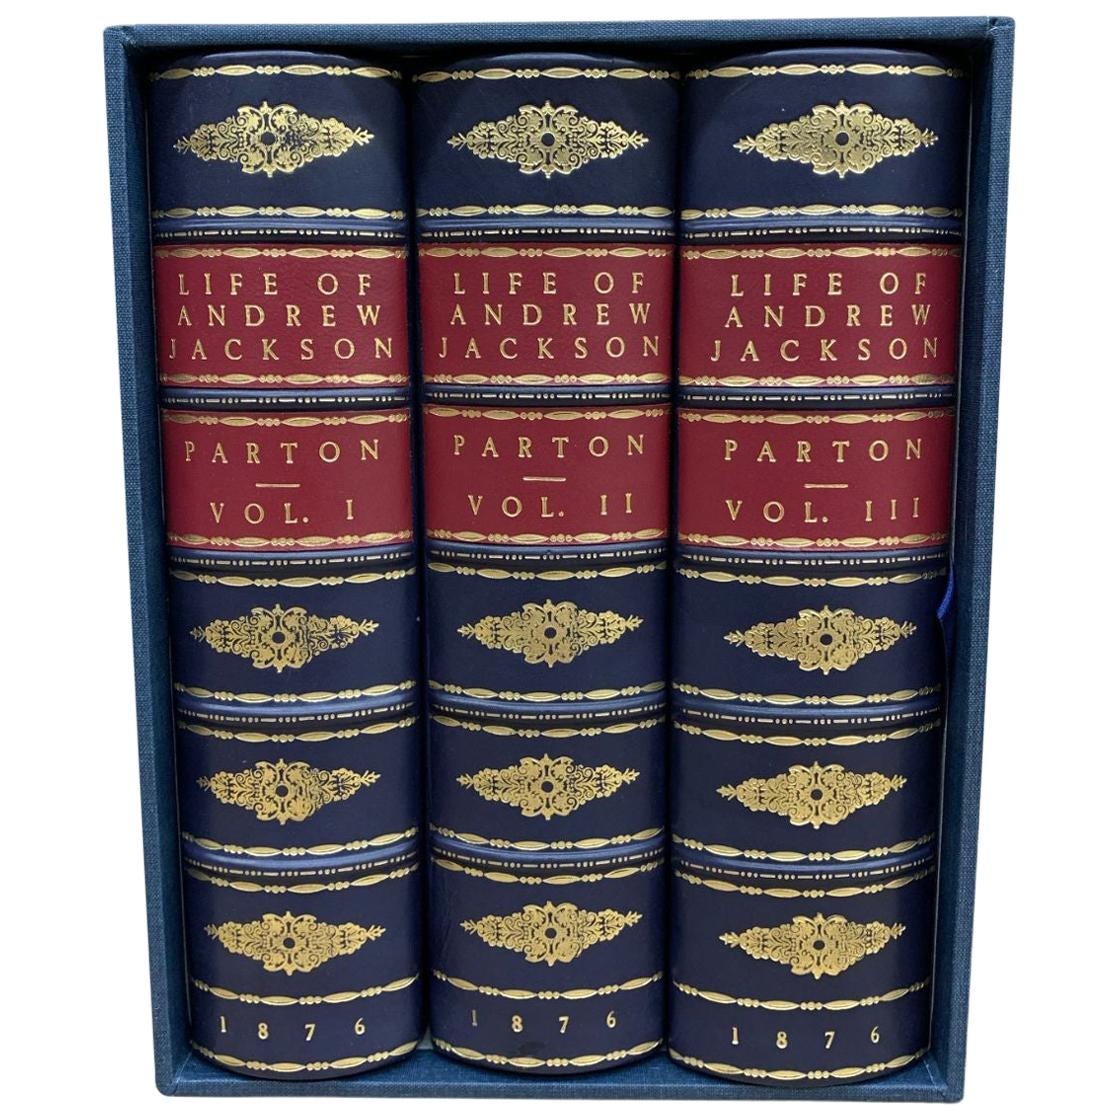 Life of Andrew Jackson by James Parton 3-Volume Leather Set, 1876